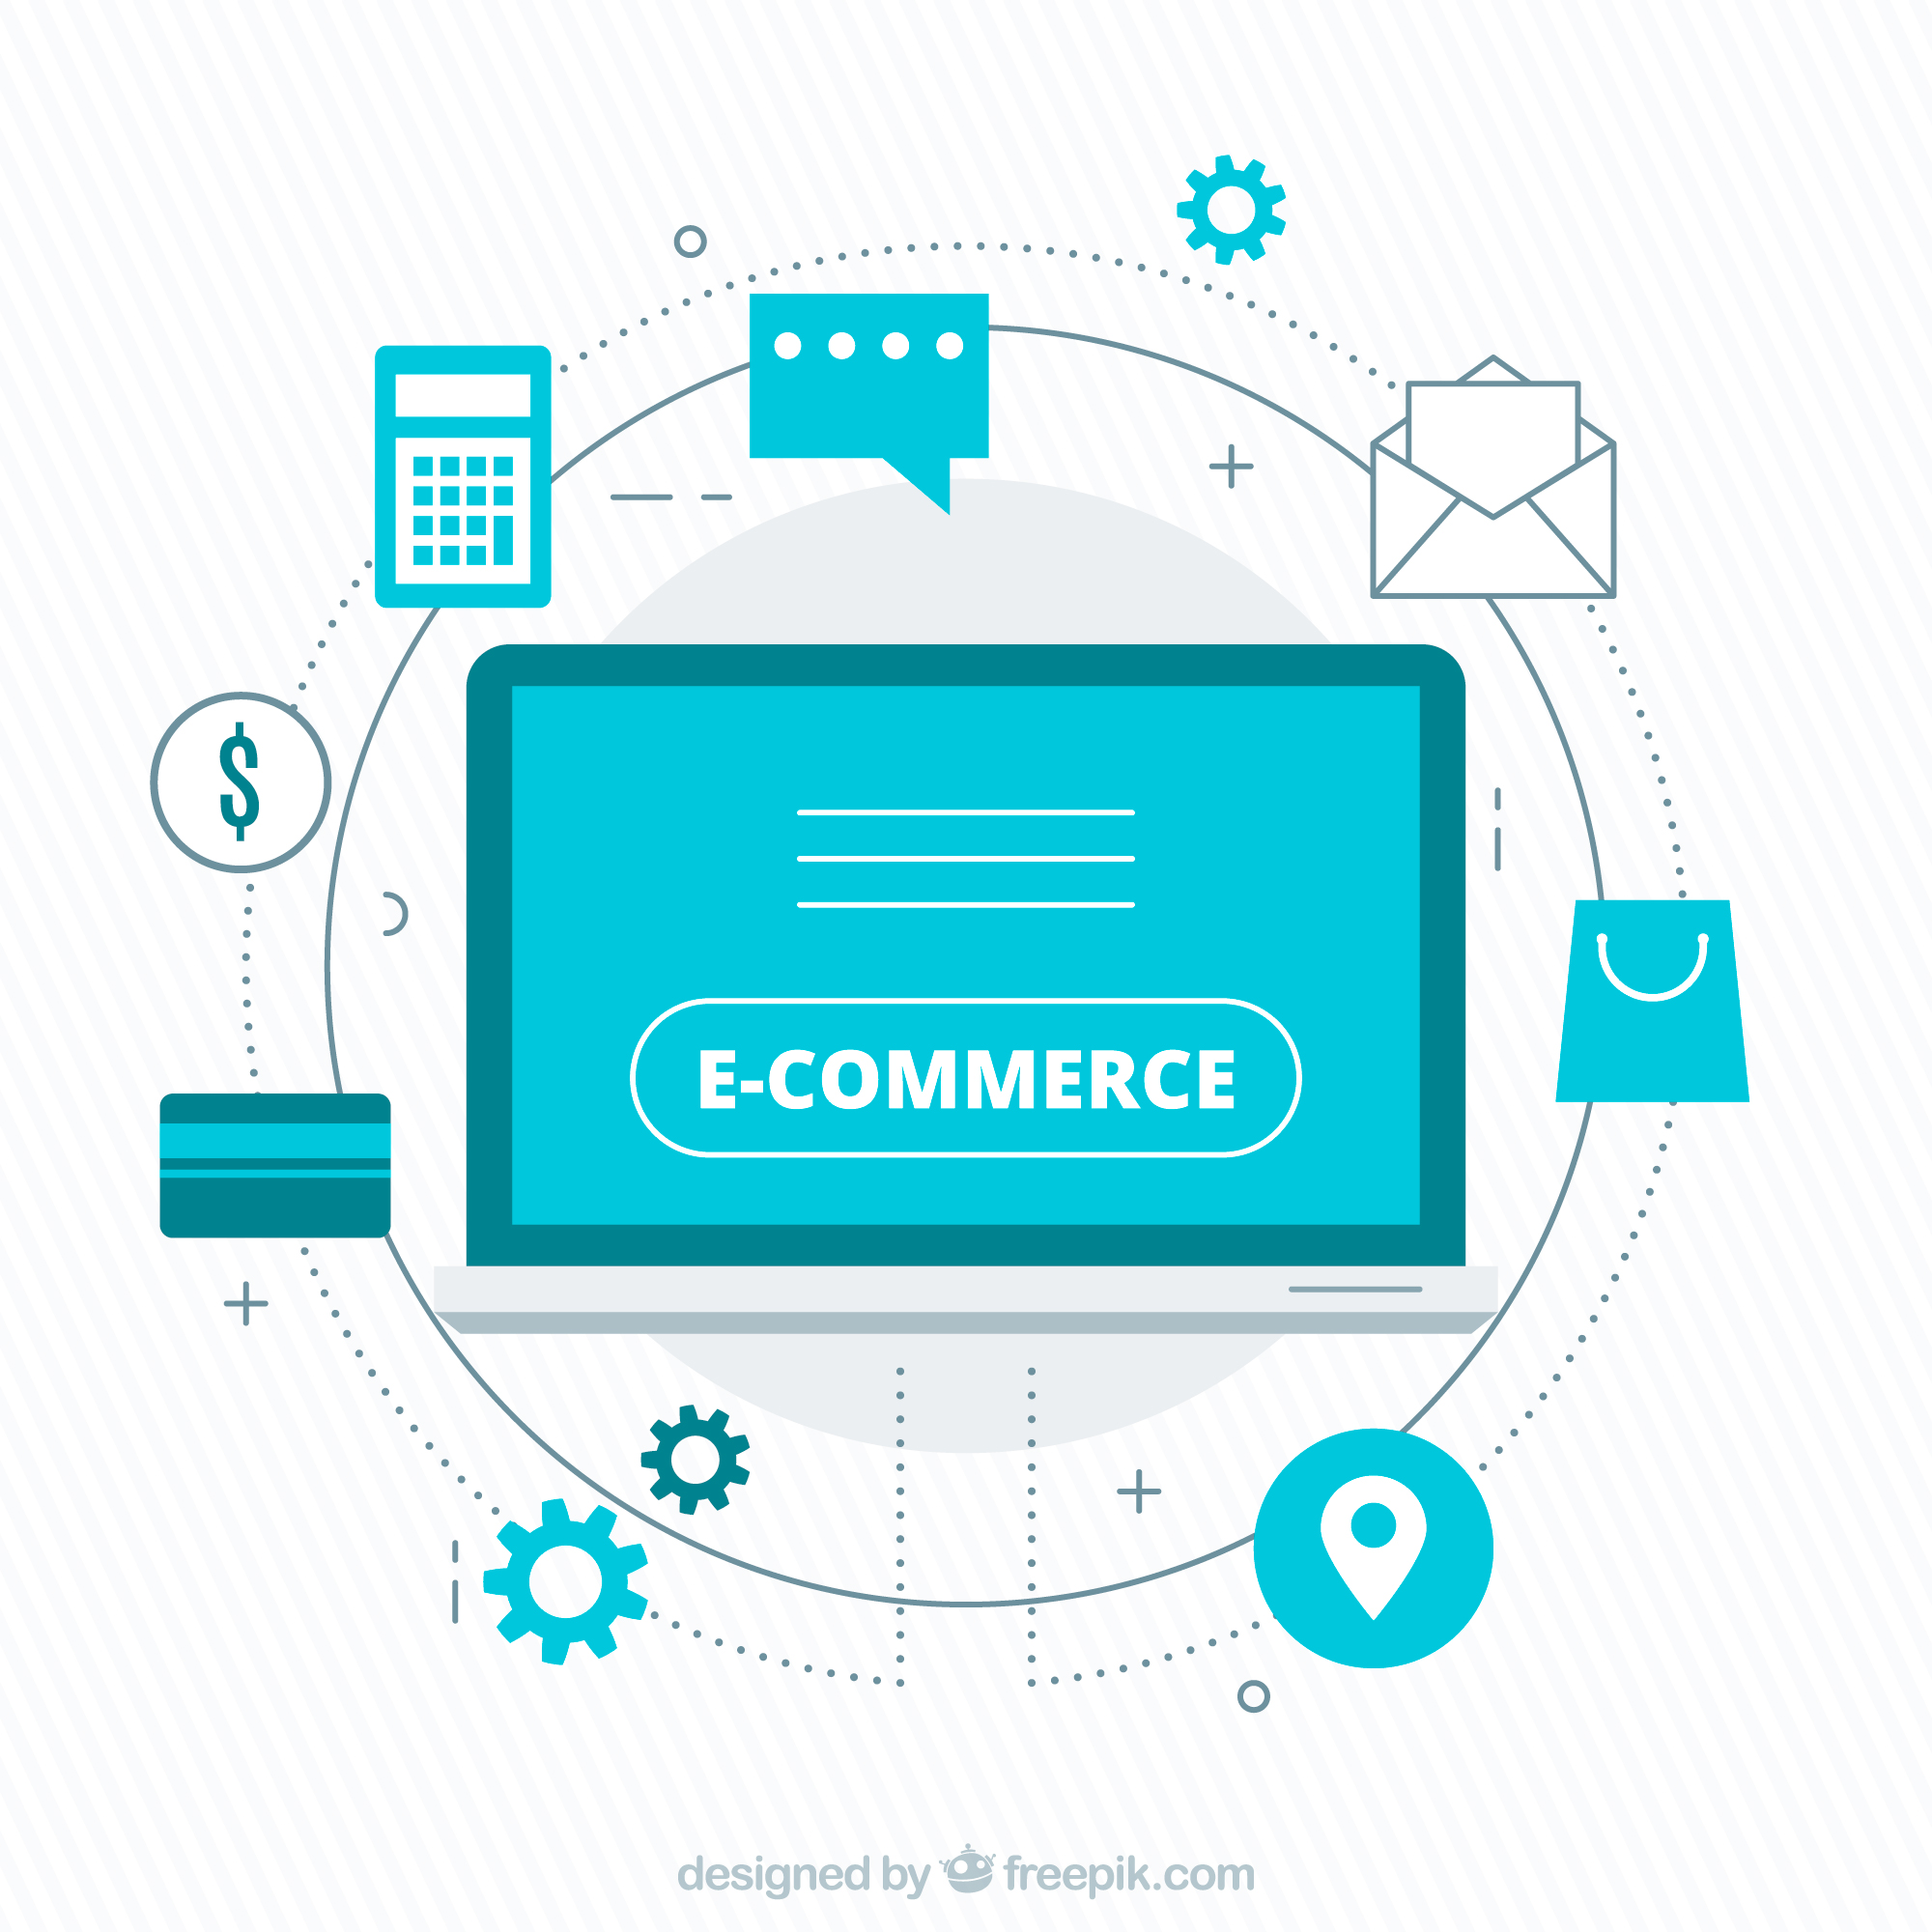 How did Global E-commerce Sales Fare in 2019?